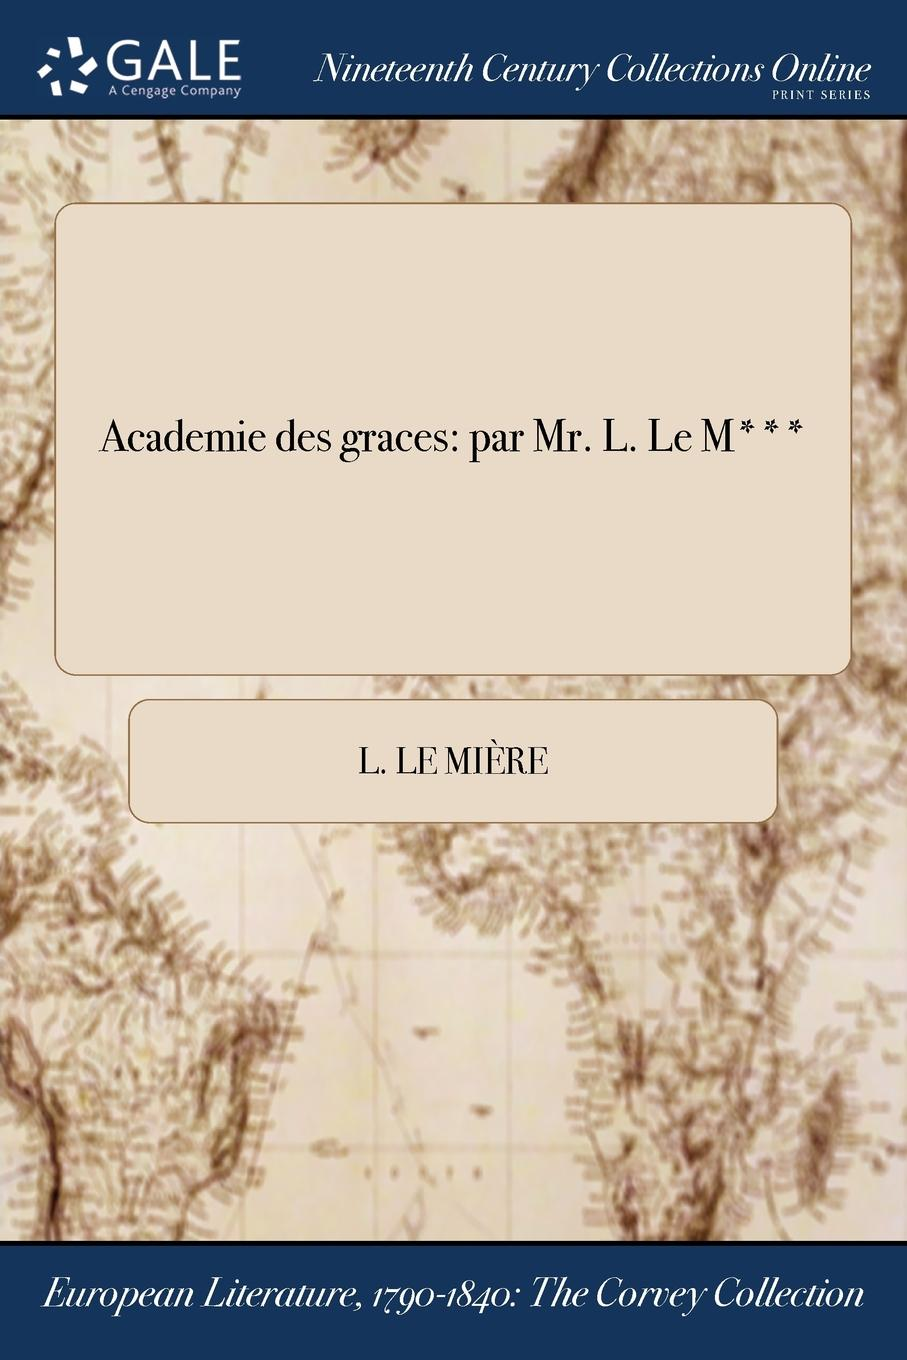 Academie des graces. par Mr. L. Le M...